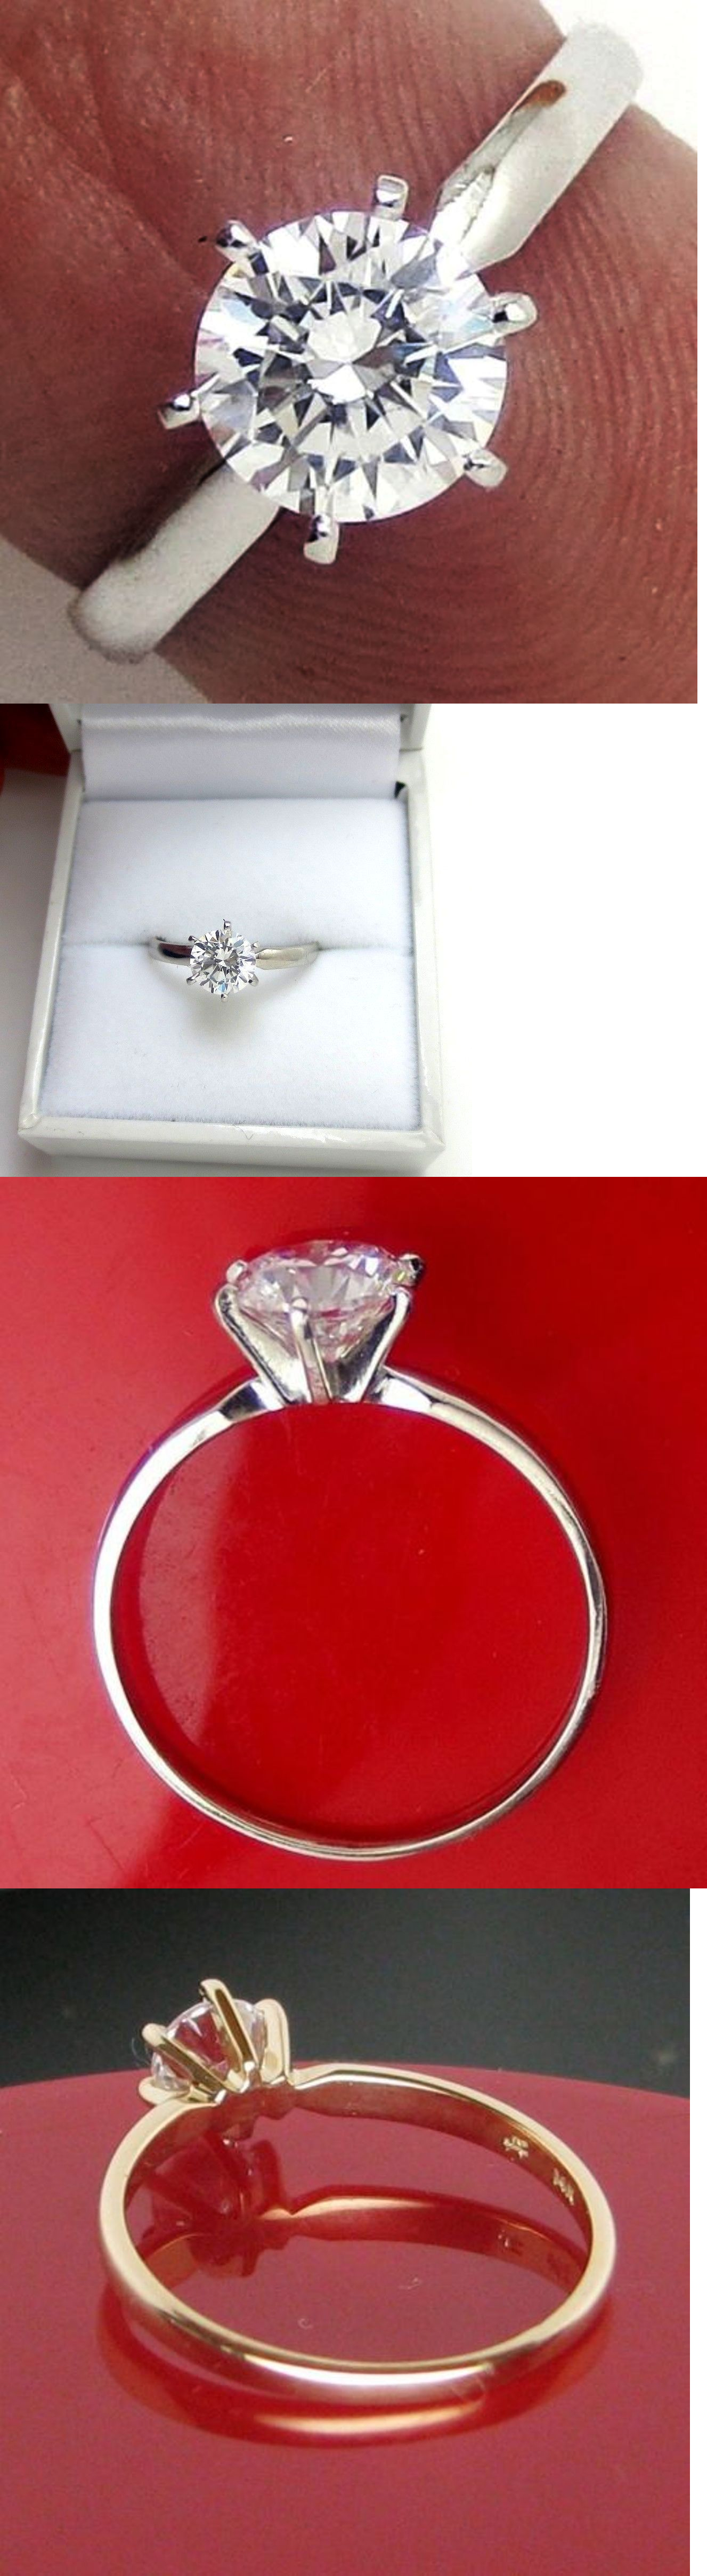 Diamond 67726: 0.51 Ct Round Brilliant Cut Solitaire Engagement Ring Real 14K Solid White Gold BUY IT NOW ONLY: $99.99